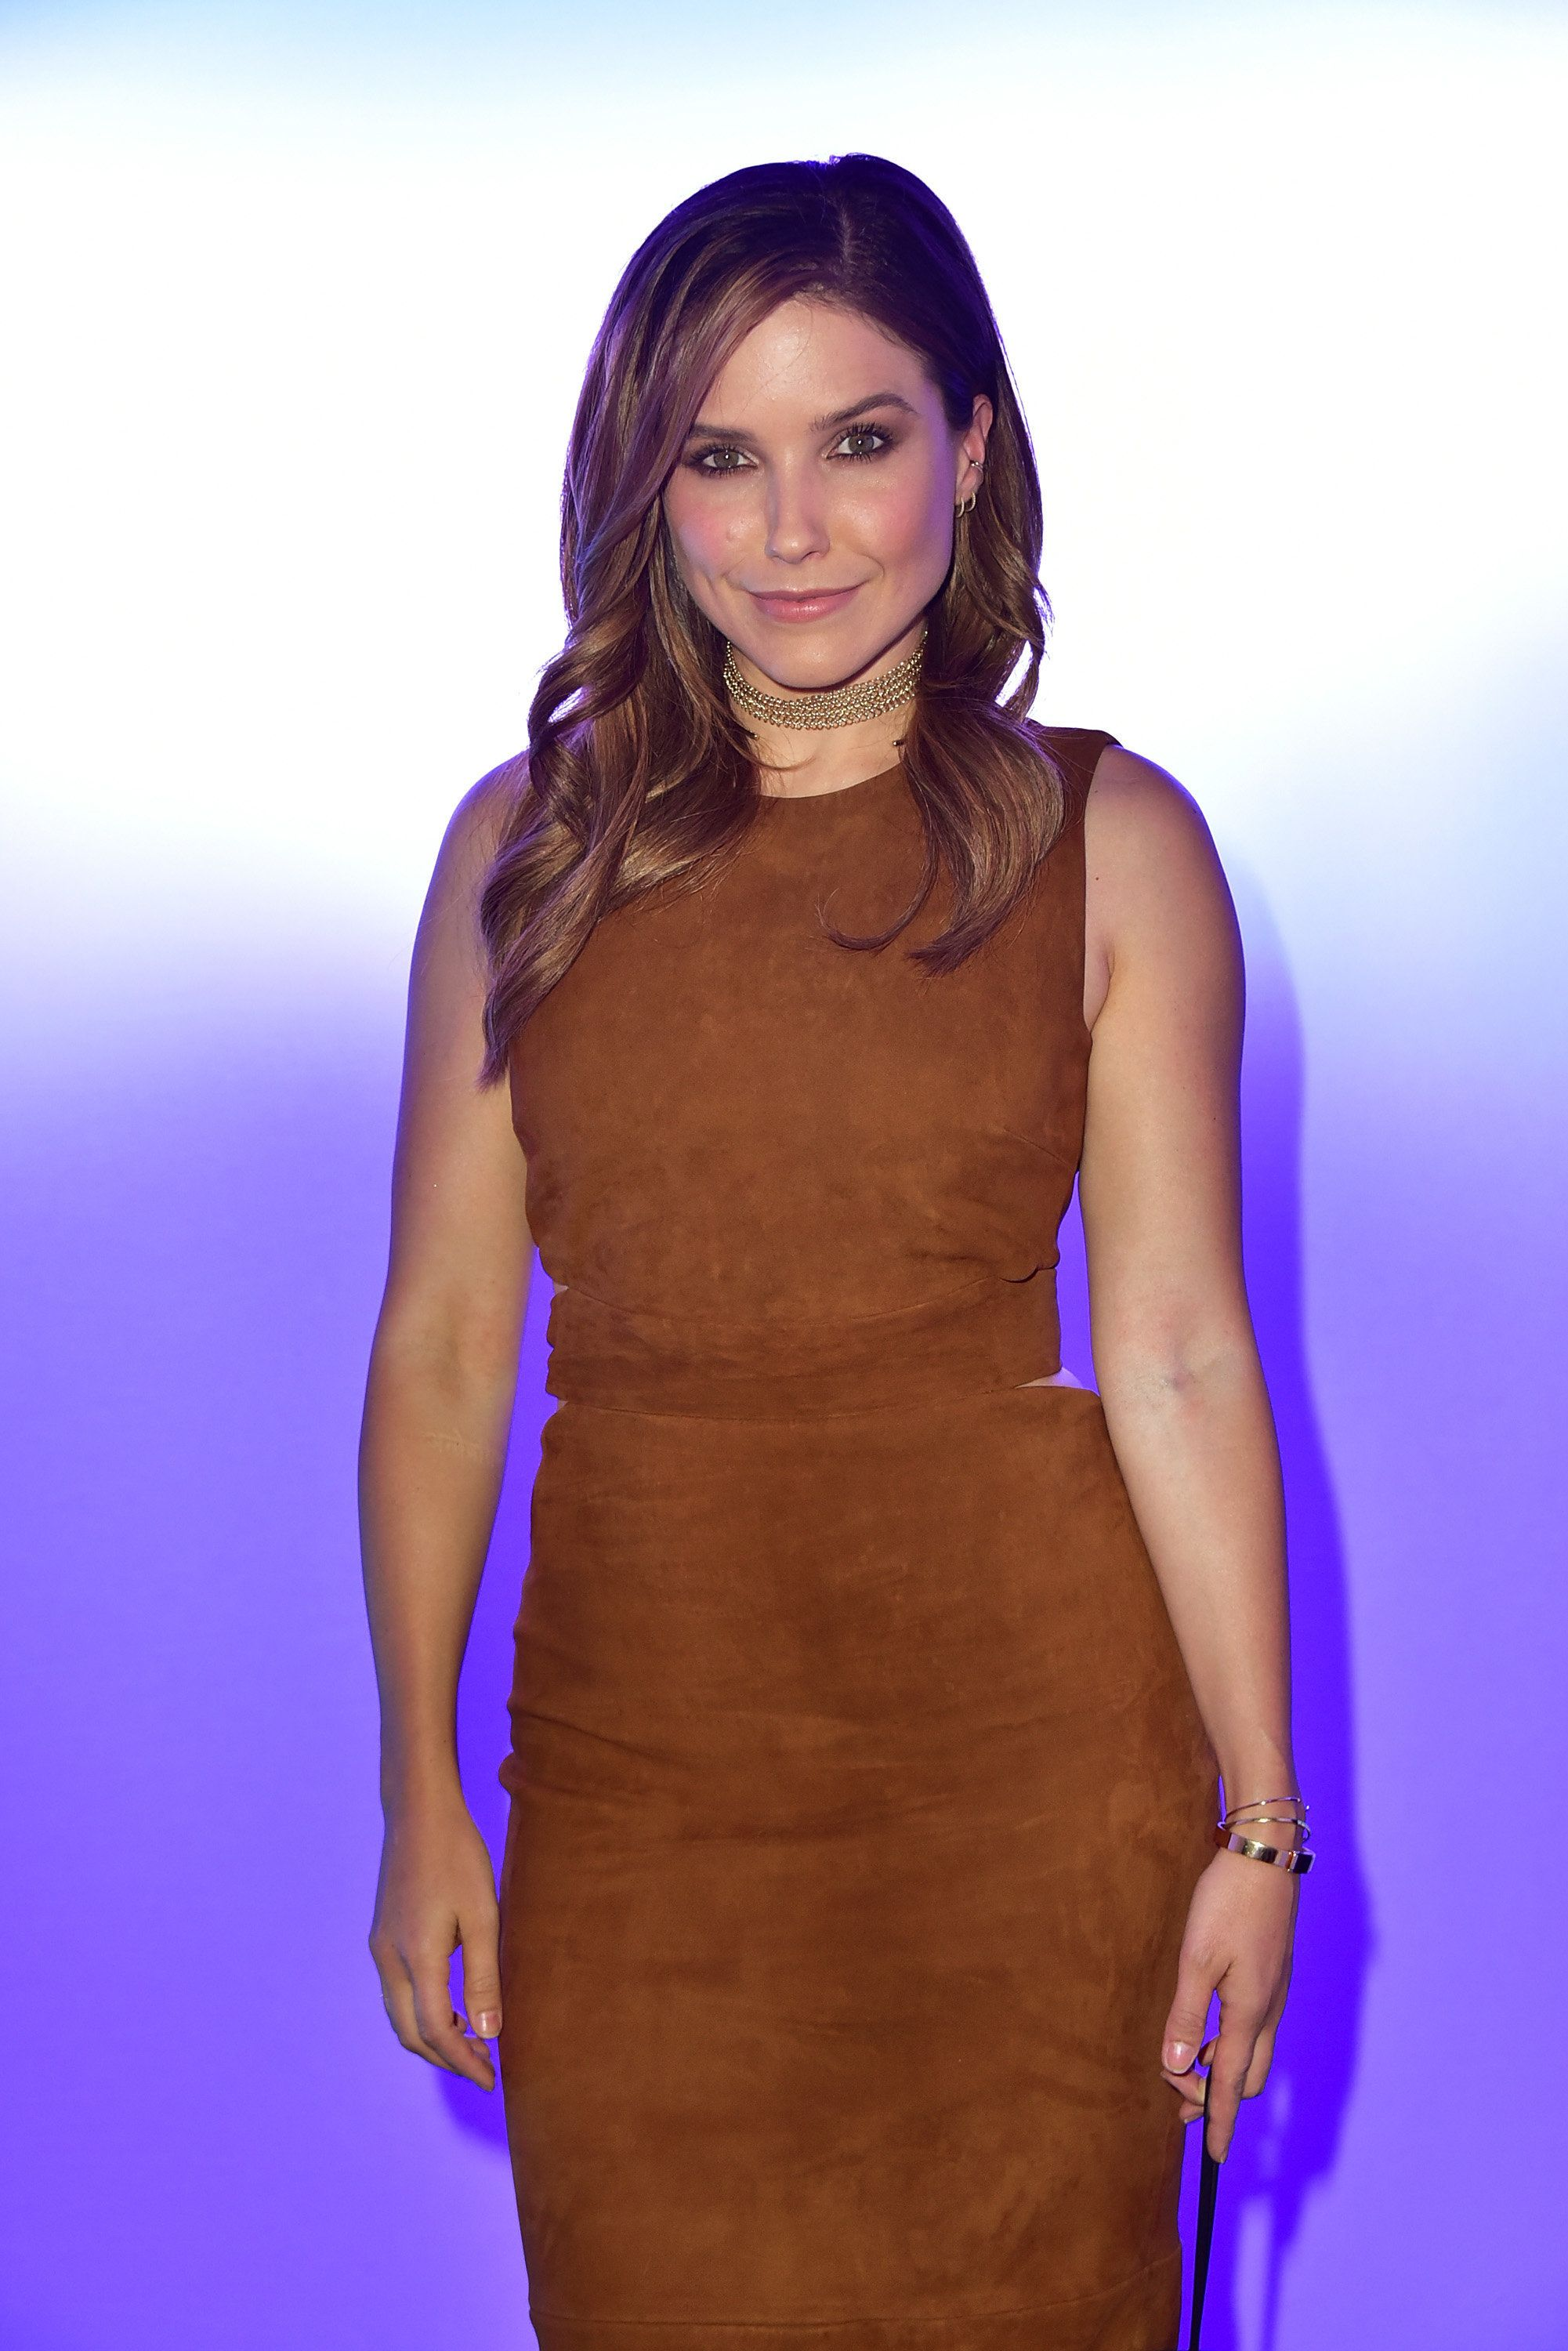 NEW YORK, NY - SEPTEMBER 09:  Actress Sophia Bush attends the Cushnie Et Ochs show during September 2016 New York Fashion Week: The Shows event at The Dock, Skylight at Moynihan Station on September 9, 2016 in New York City.  (Photo by Brian Killian/WireImage)